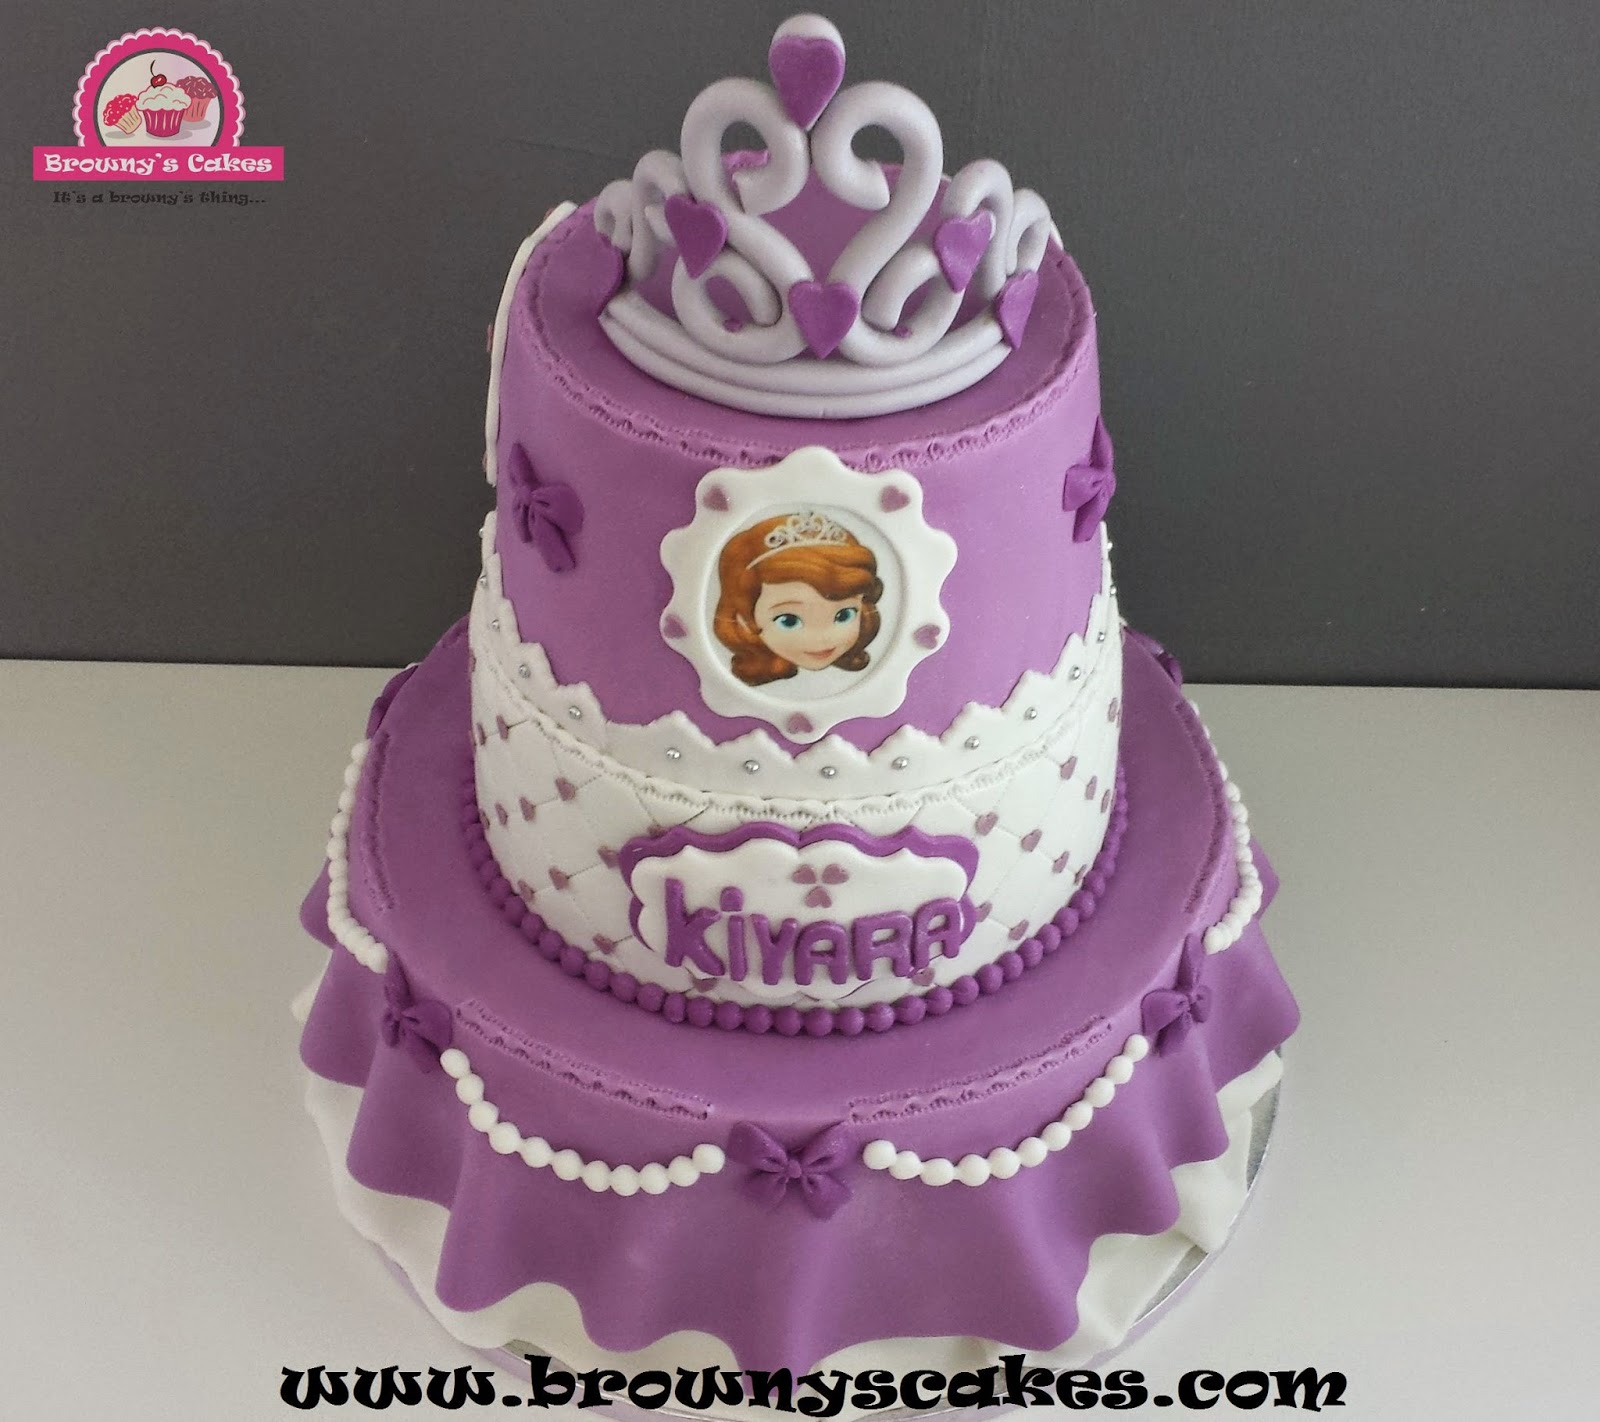 Pictures Of Princess Sofia Cake : Browny s Cakes : Taart Portofolio